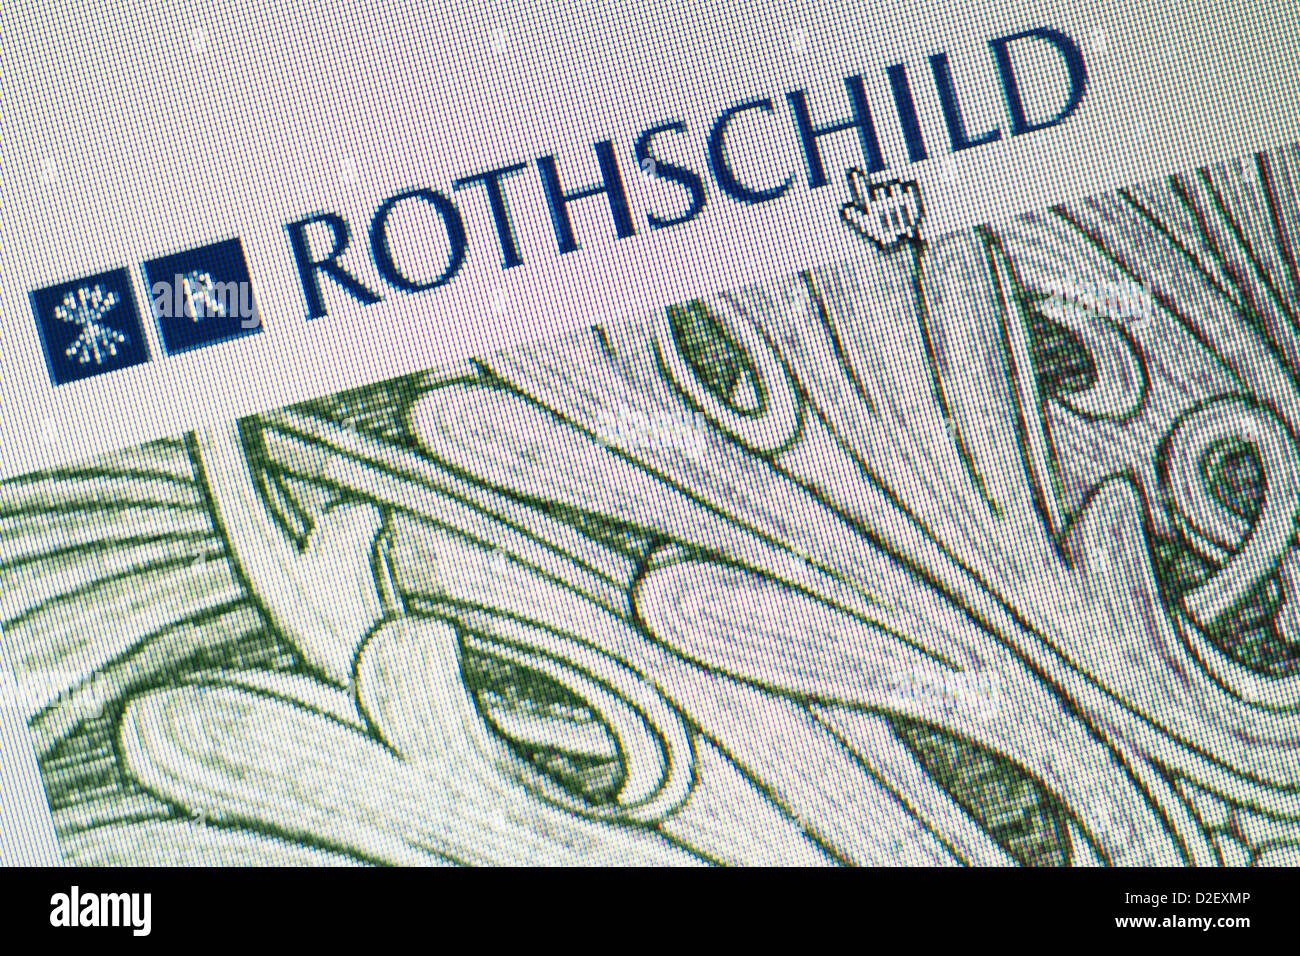 Rothschild logo and website close up - Stock Image